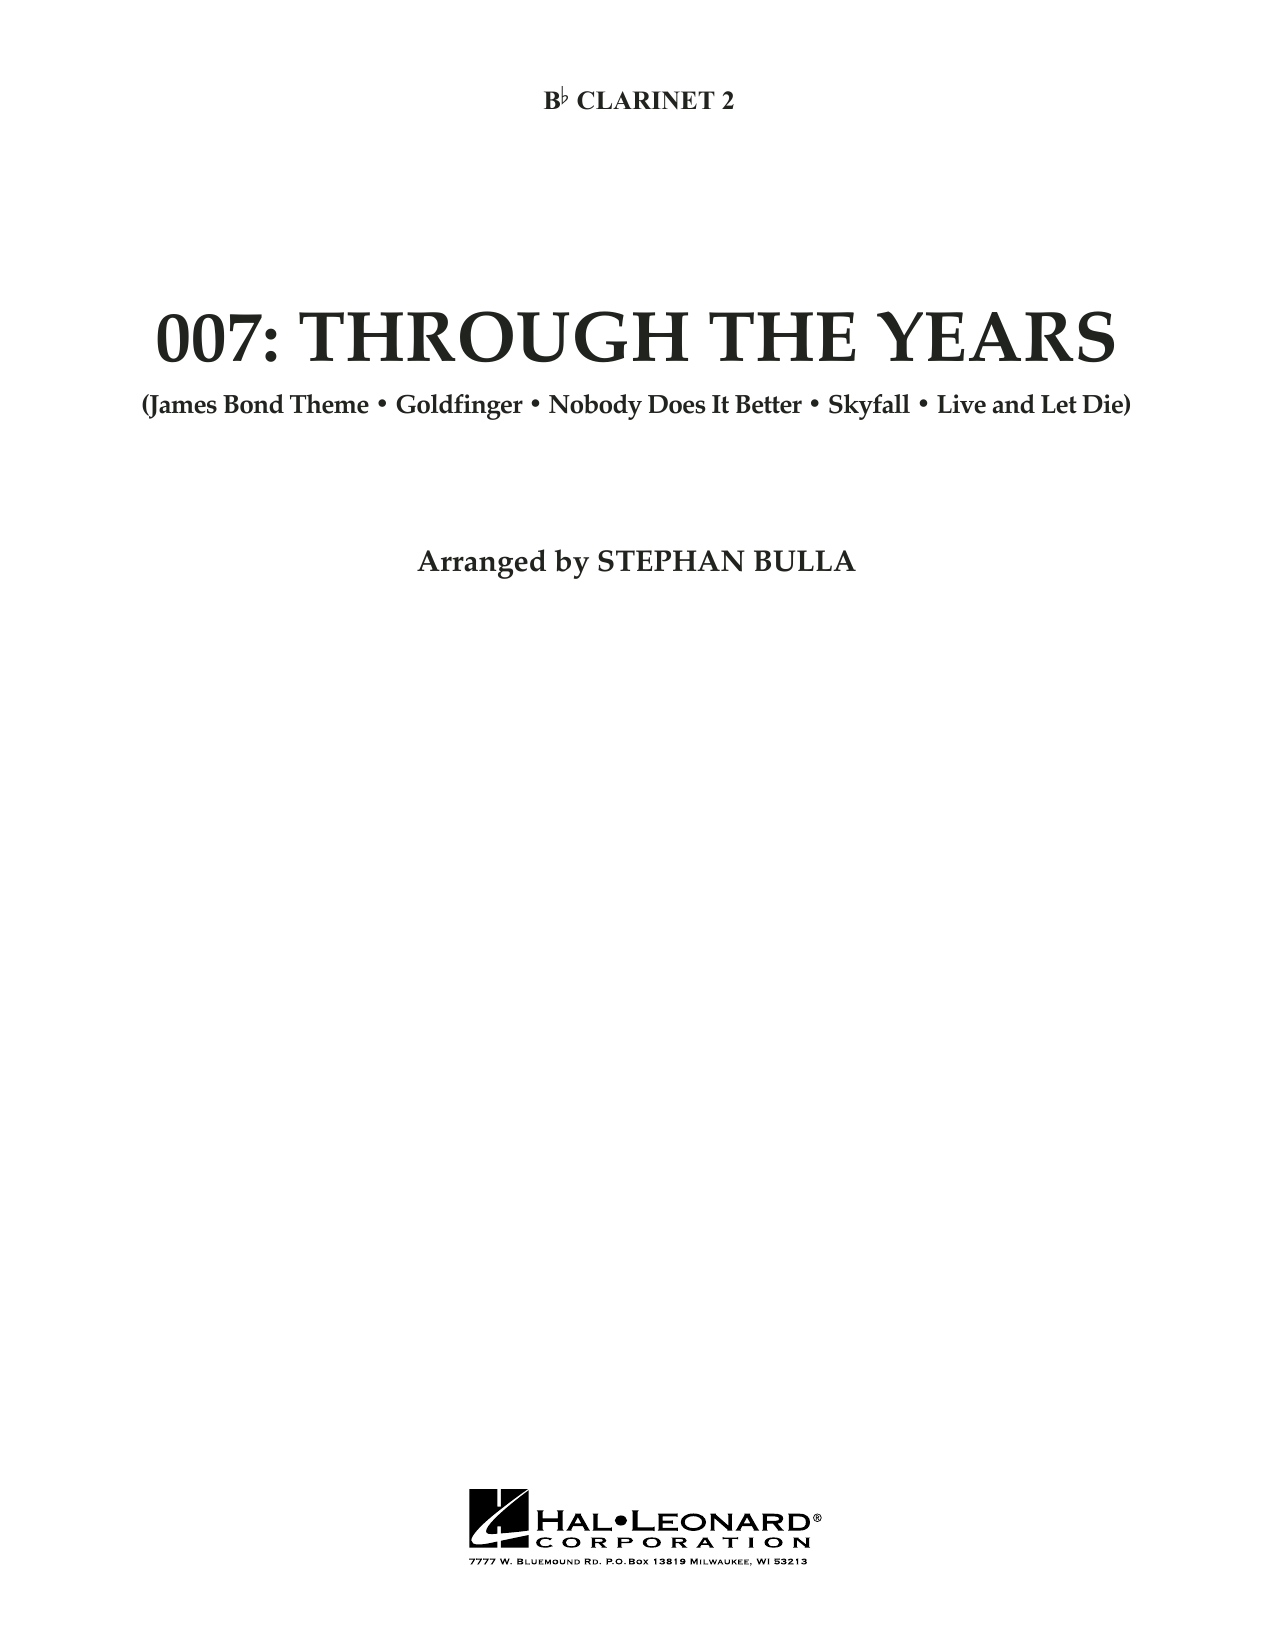 007: Through The Years - Bb Clarinet 2 (Orchestra)